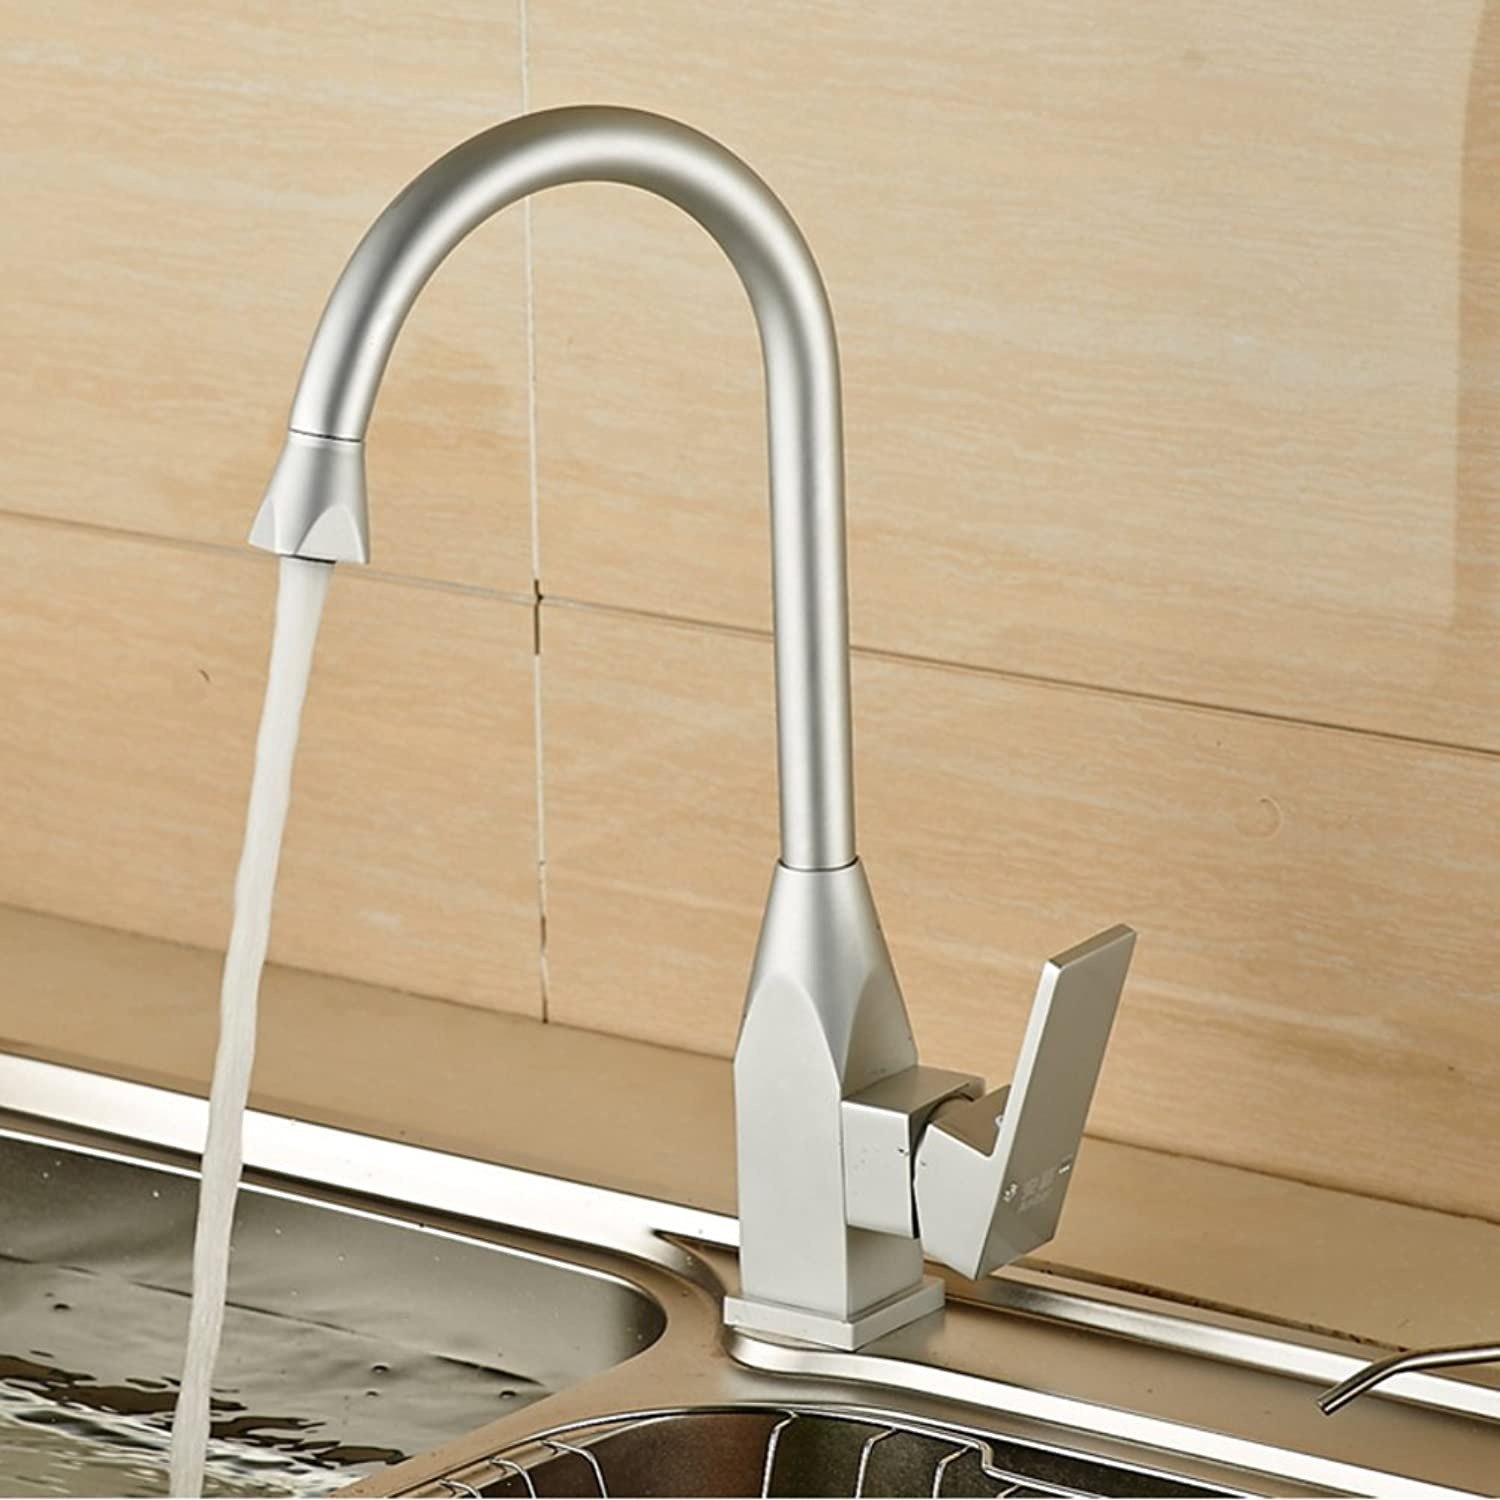 ZHF Vegetables basin kitchen faucet Sink faucet redatable faucet Washing the dishes hot and cold faucet